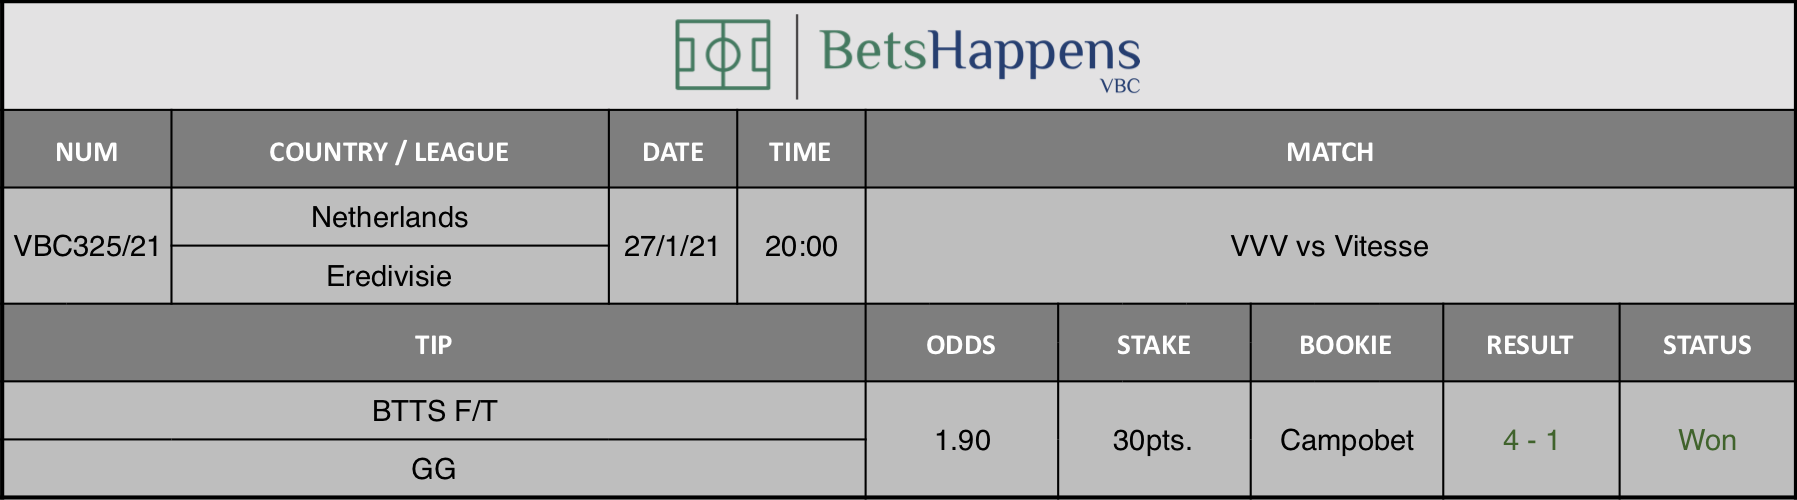 Results of our tip for the VVV vs Vitesse match where BTTS F/T  GG is recommended.